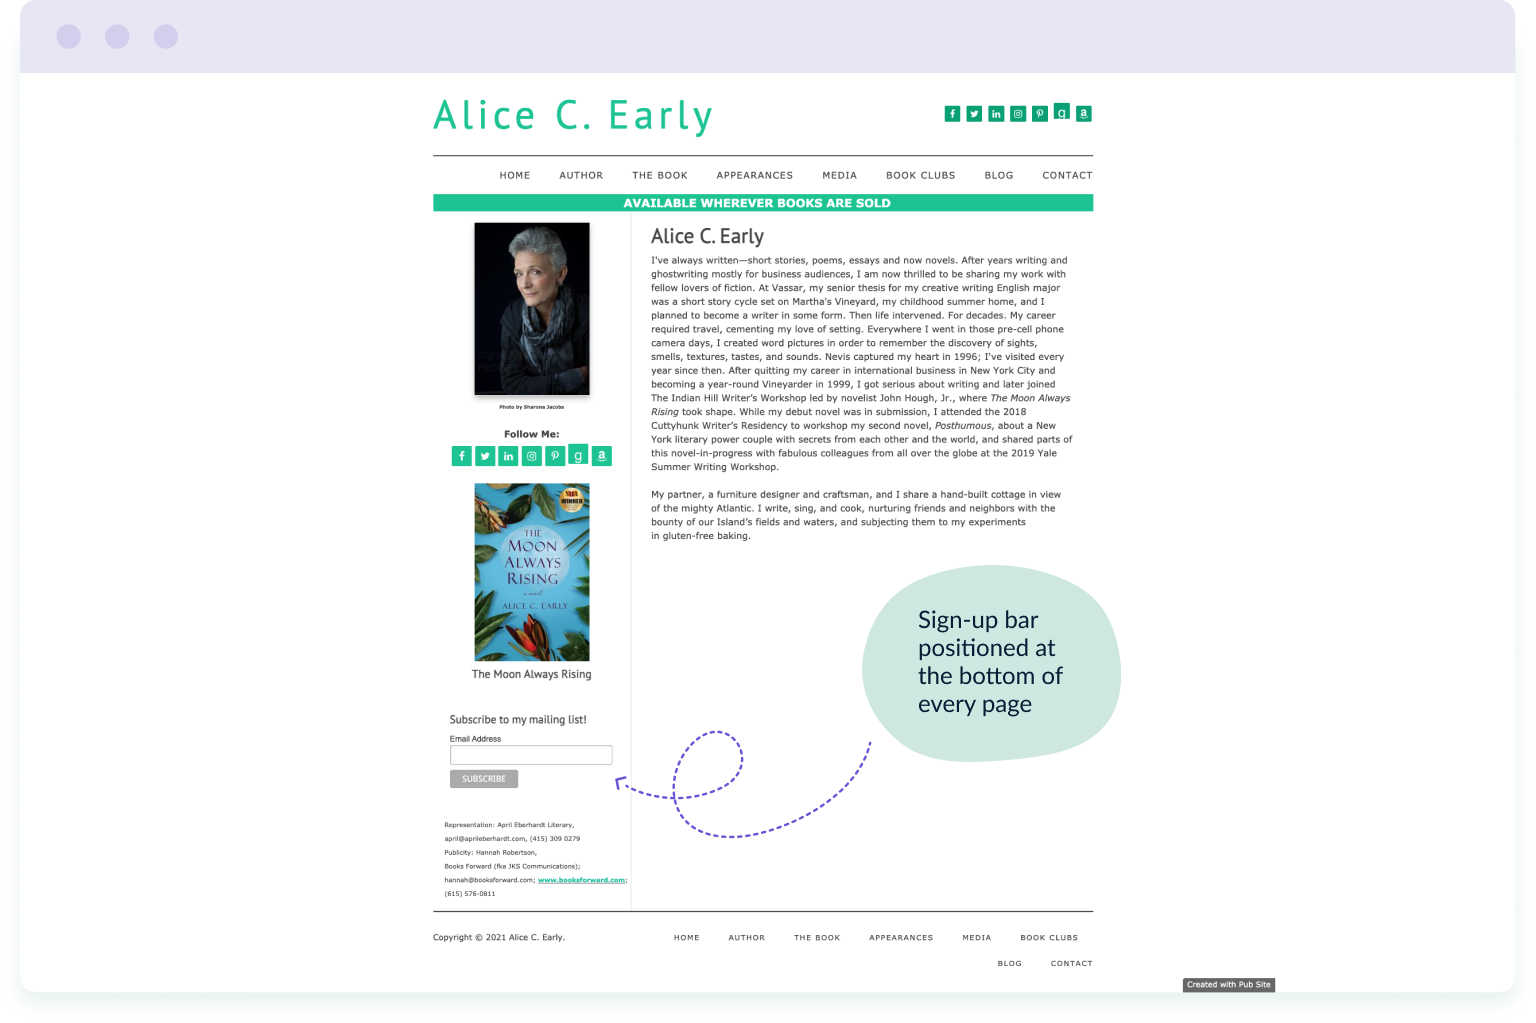 Example of a sign-up bar used on every page of author Alice Early's website – an important step in building an author's email list